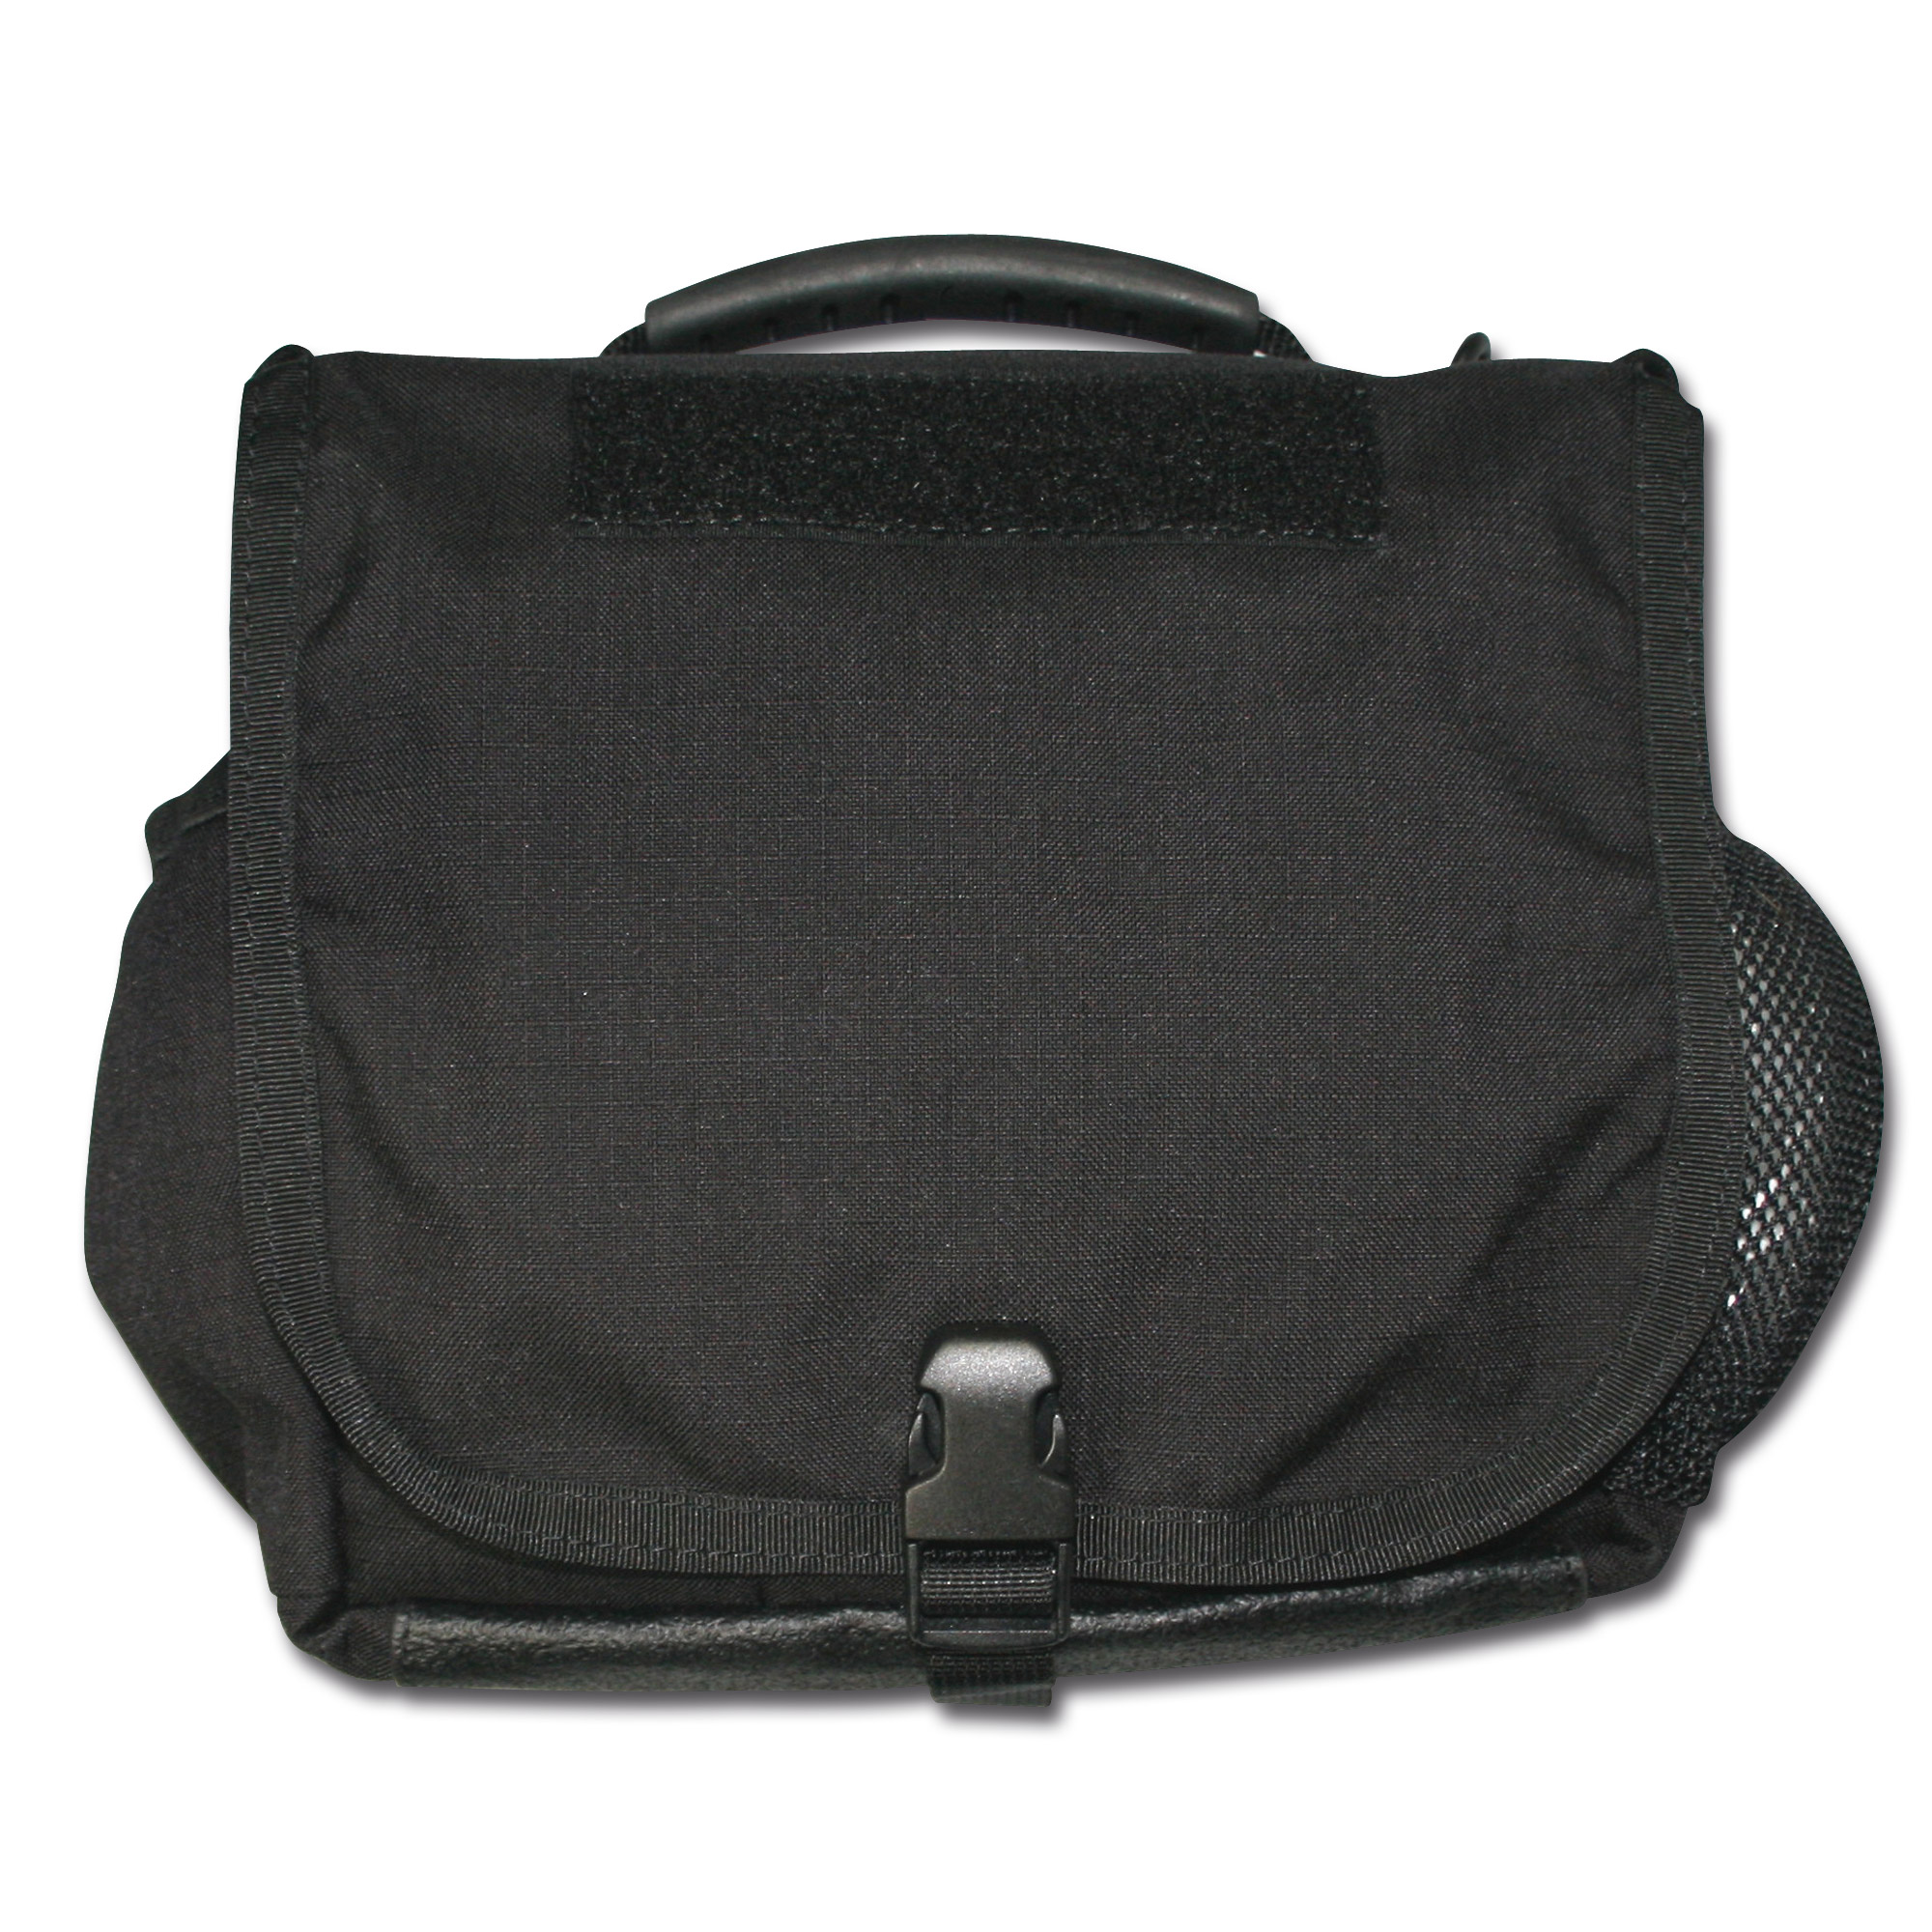 Blackhawk Tactical Handbag schwarz